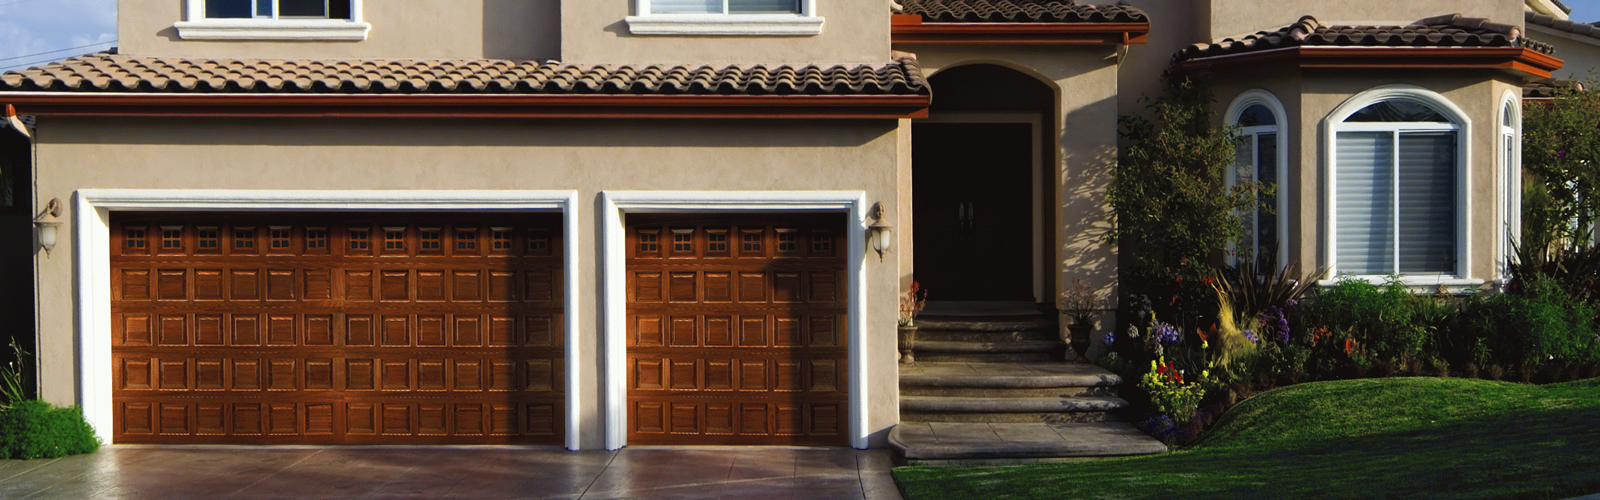 Custom Wood Doors & Overhead Door Company of Houston - Houston garage door sales ...